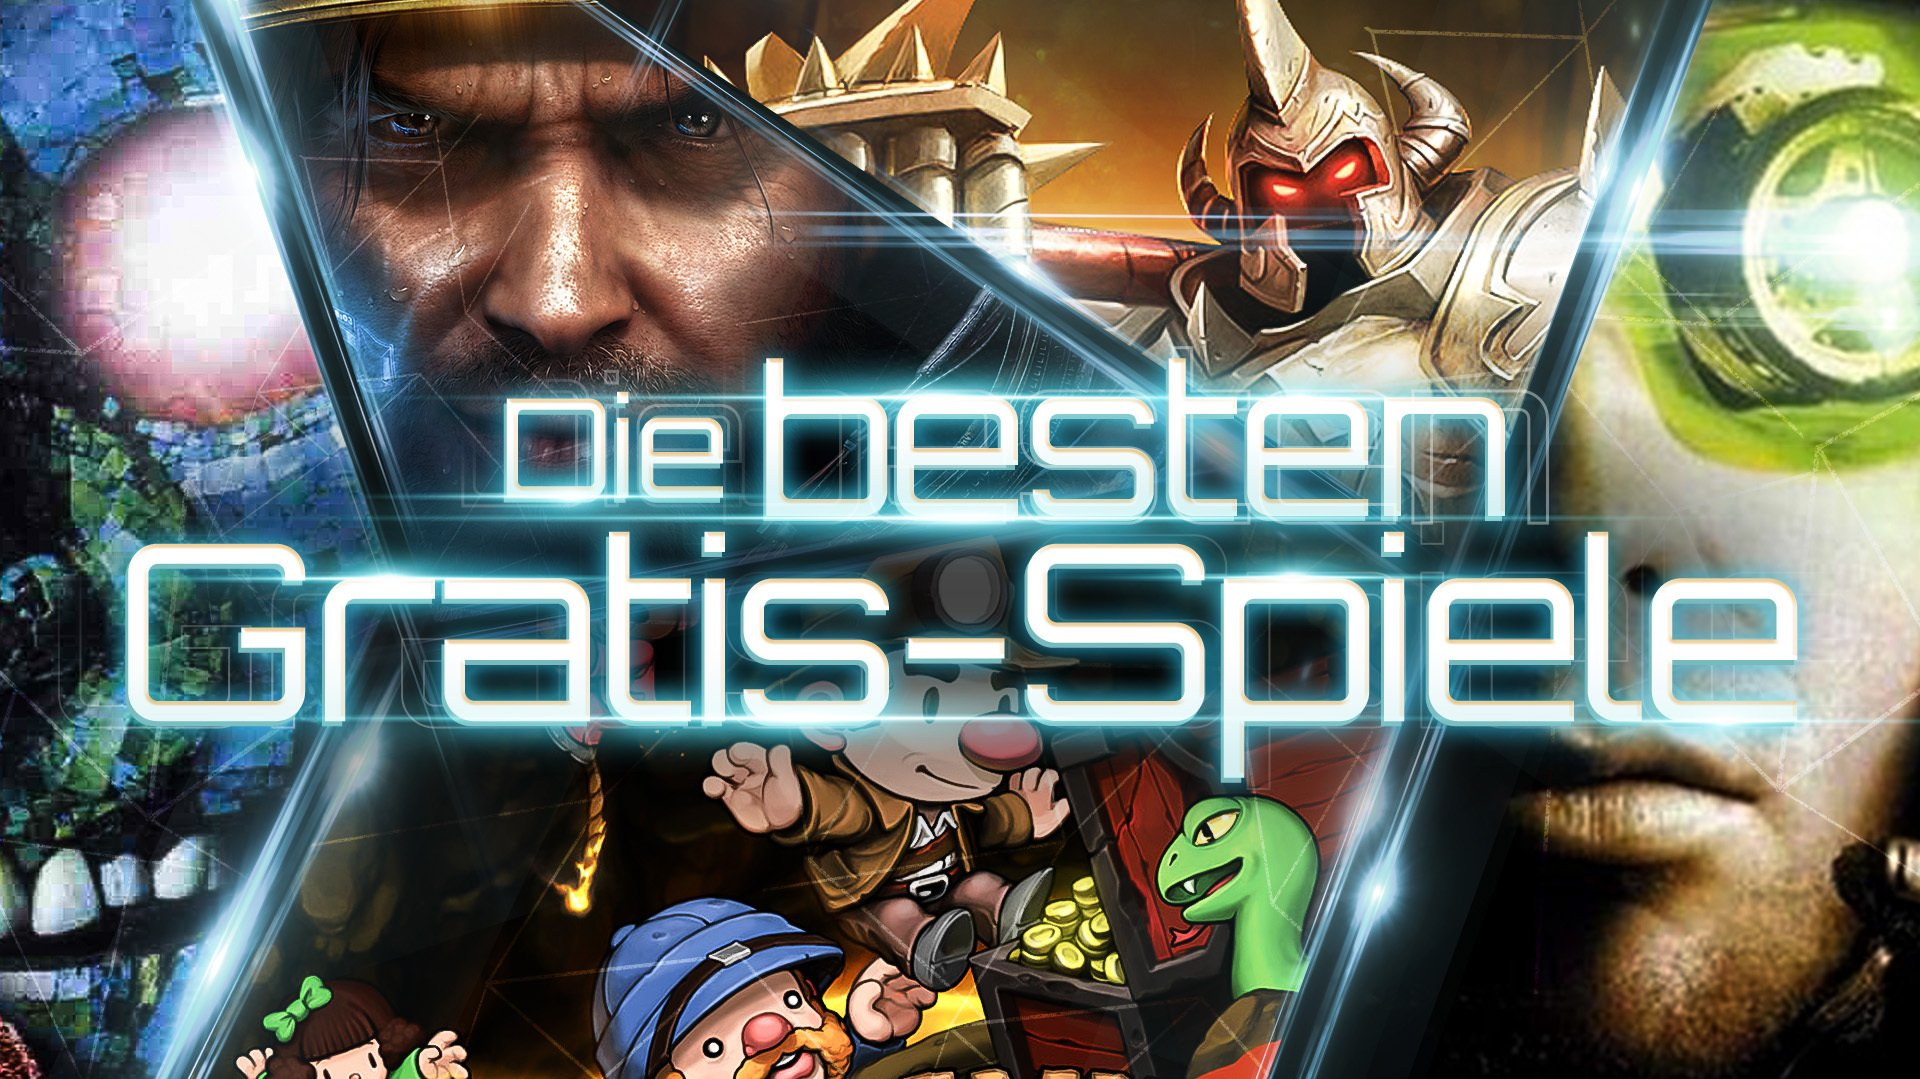 Spiele Vollversion Download